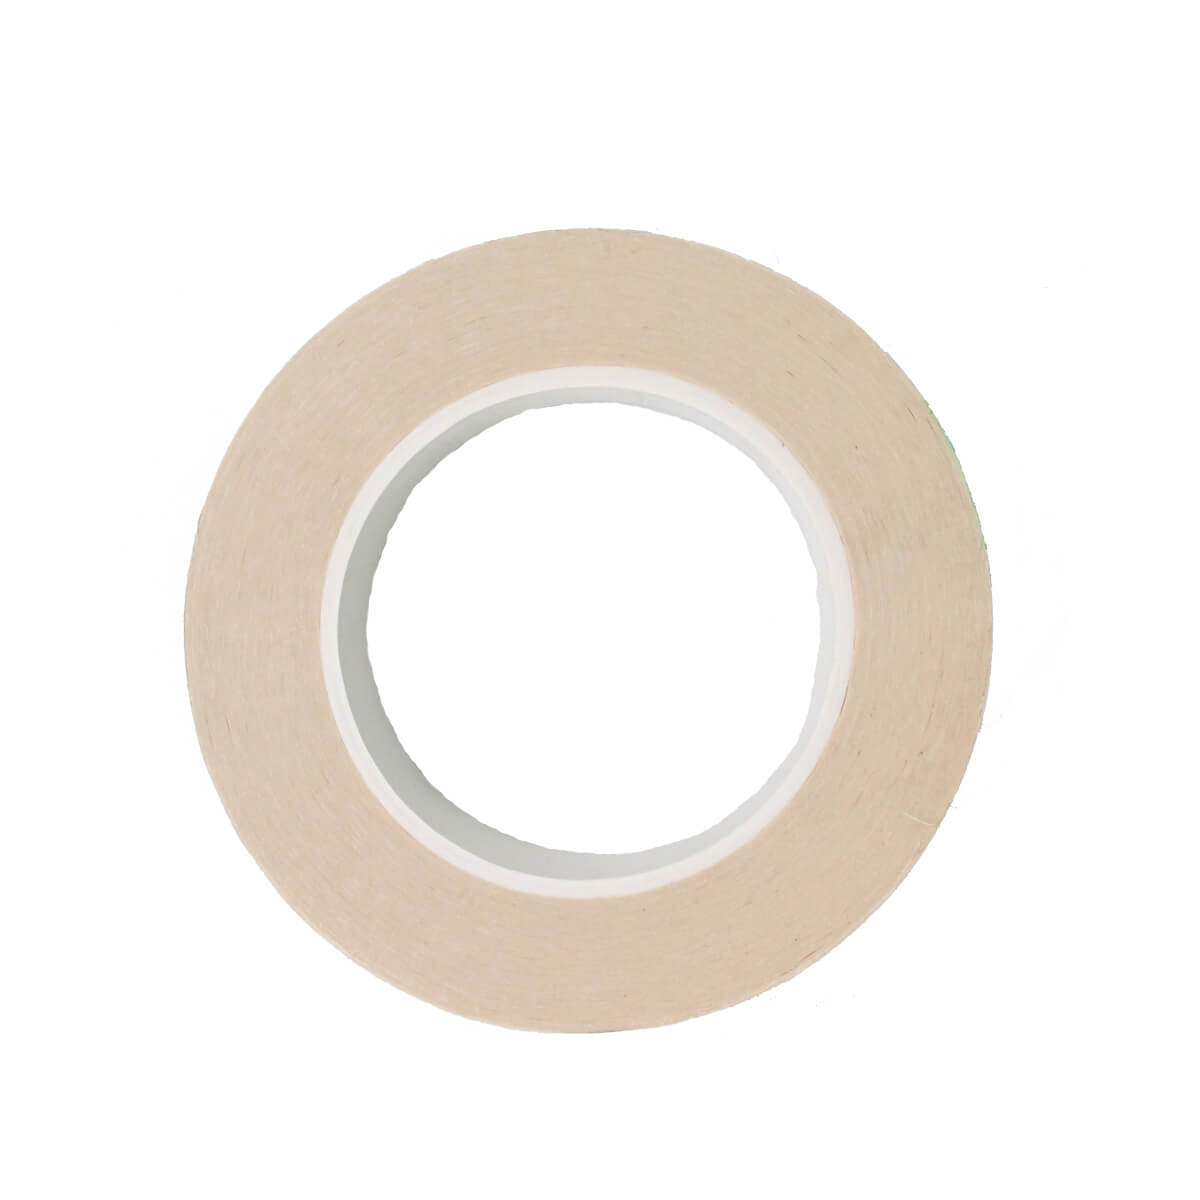 DOUBLE SIDED CRAFT TAPE 48 mm x 50 Mtrs